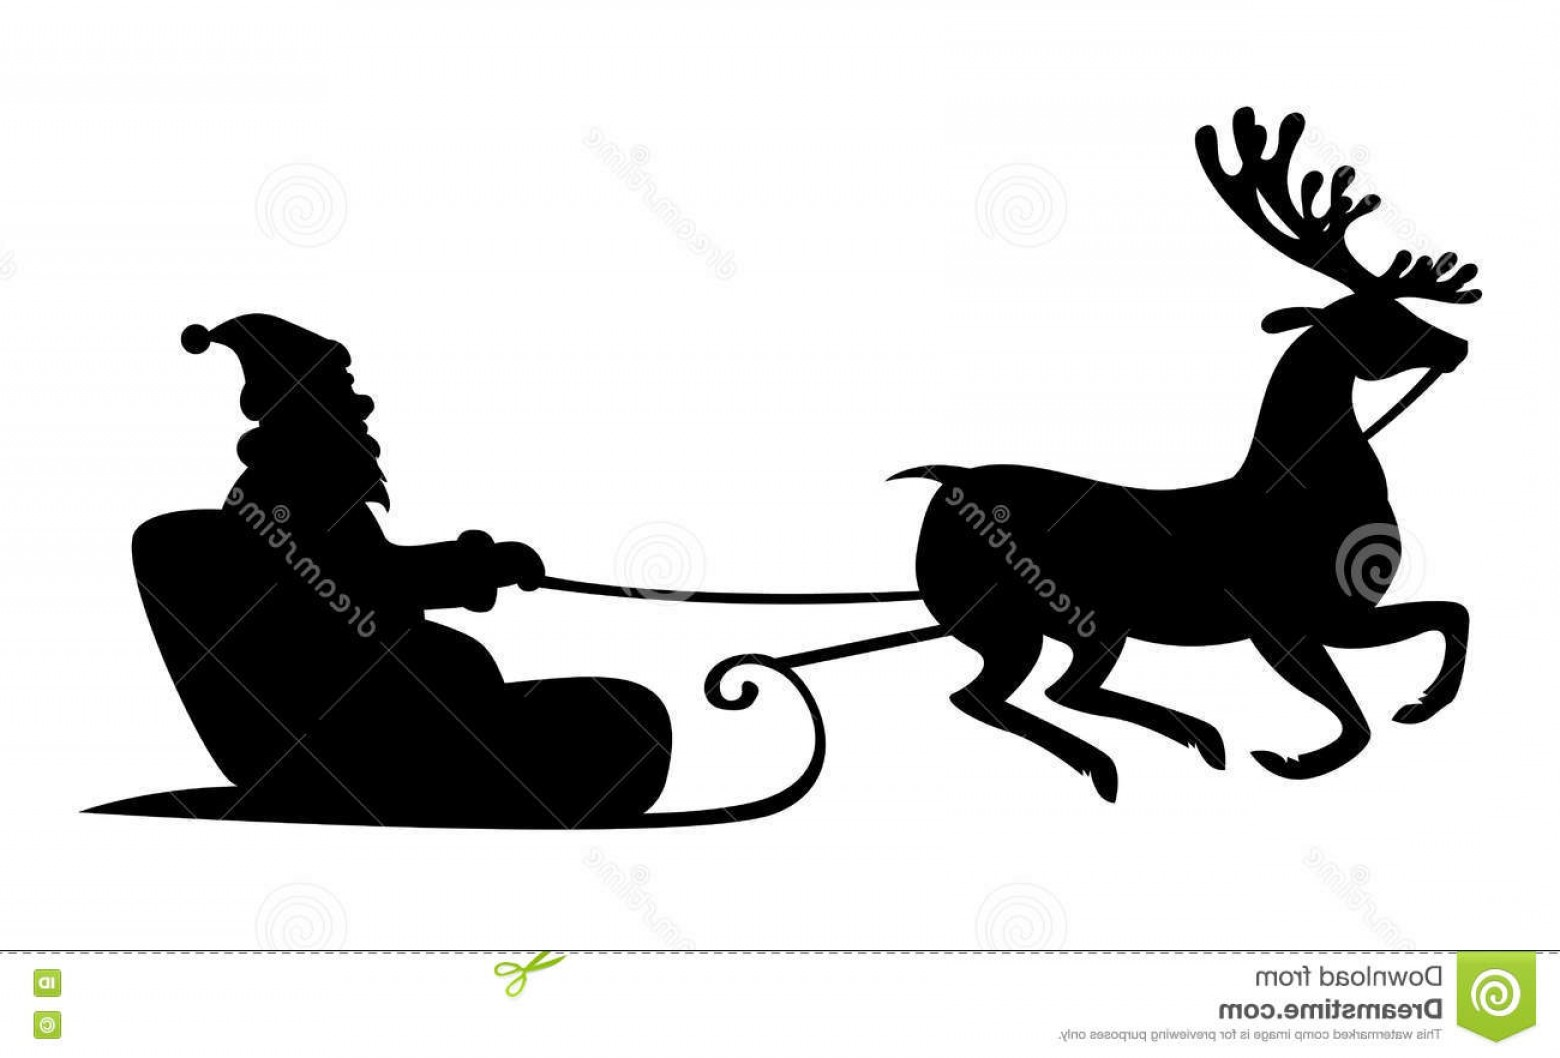 Black Santa Sleigh Vector: Stock Illustration Christmas Silhouette Santa Claus Riding Reindeer Sleigh Vector Illustrations Isolated White Background Image